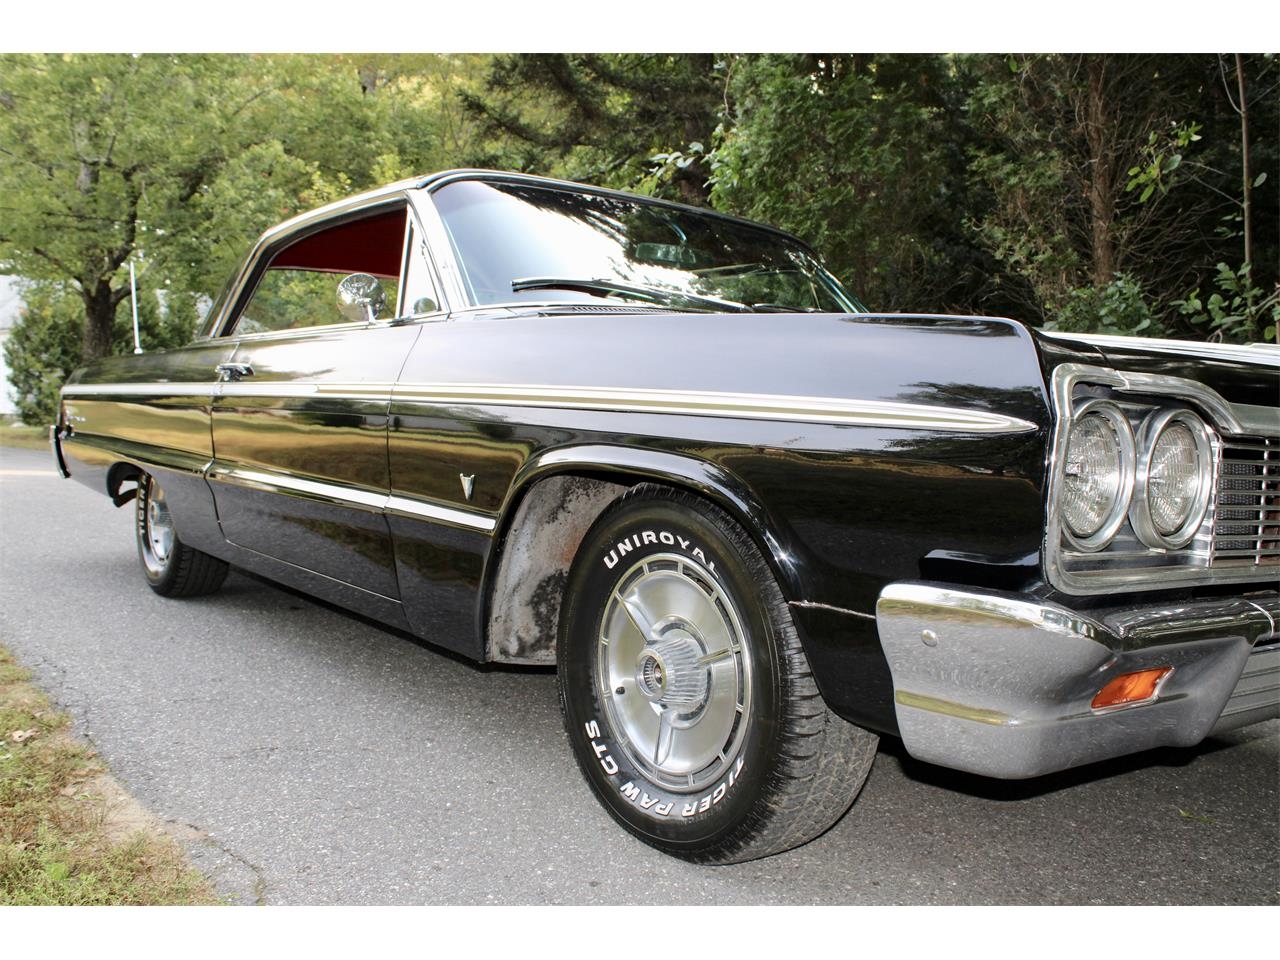 1964 Chevrolet Impala SS (CC-1392614) for sale in Stow , Massachusetts